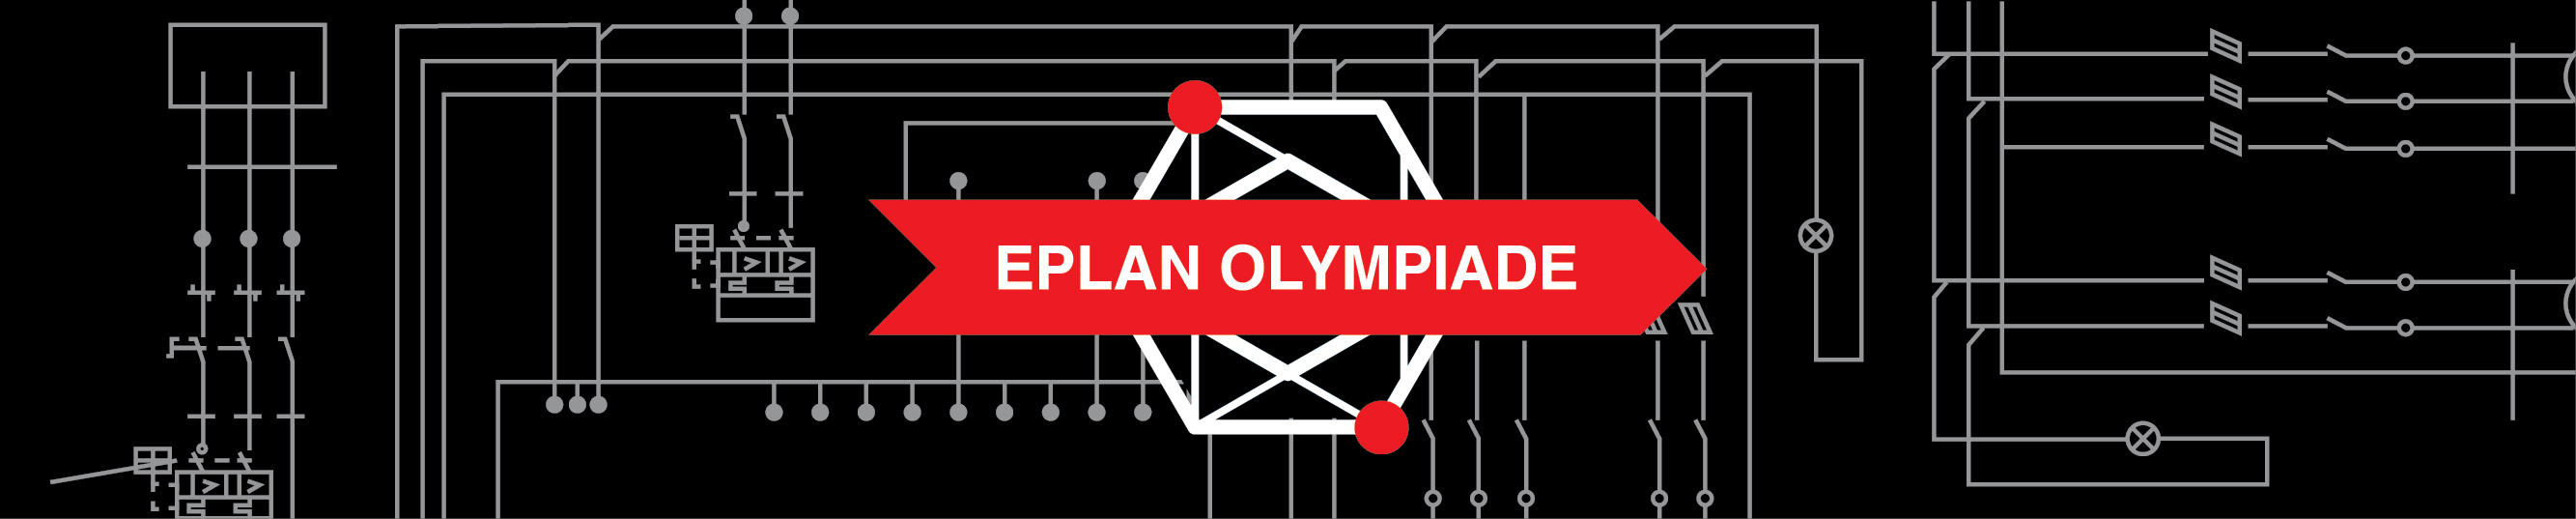 Header_olympiade.png